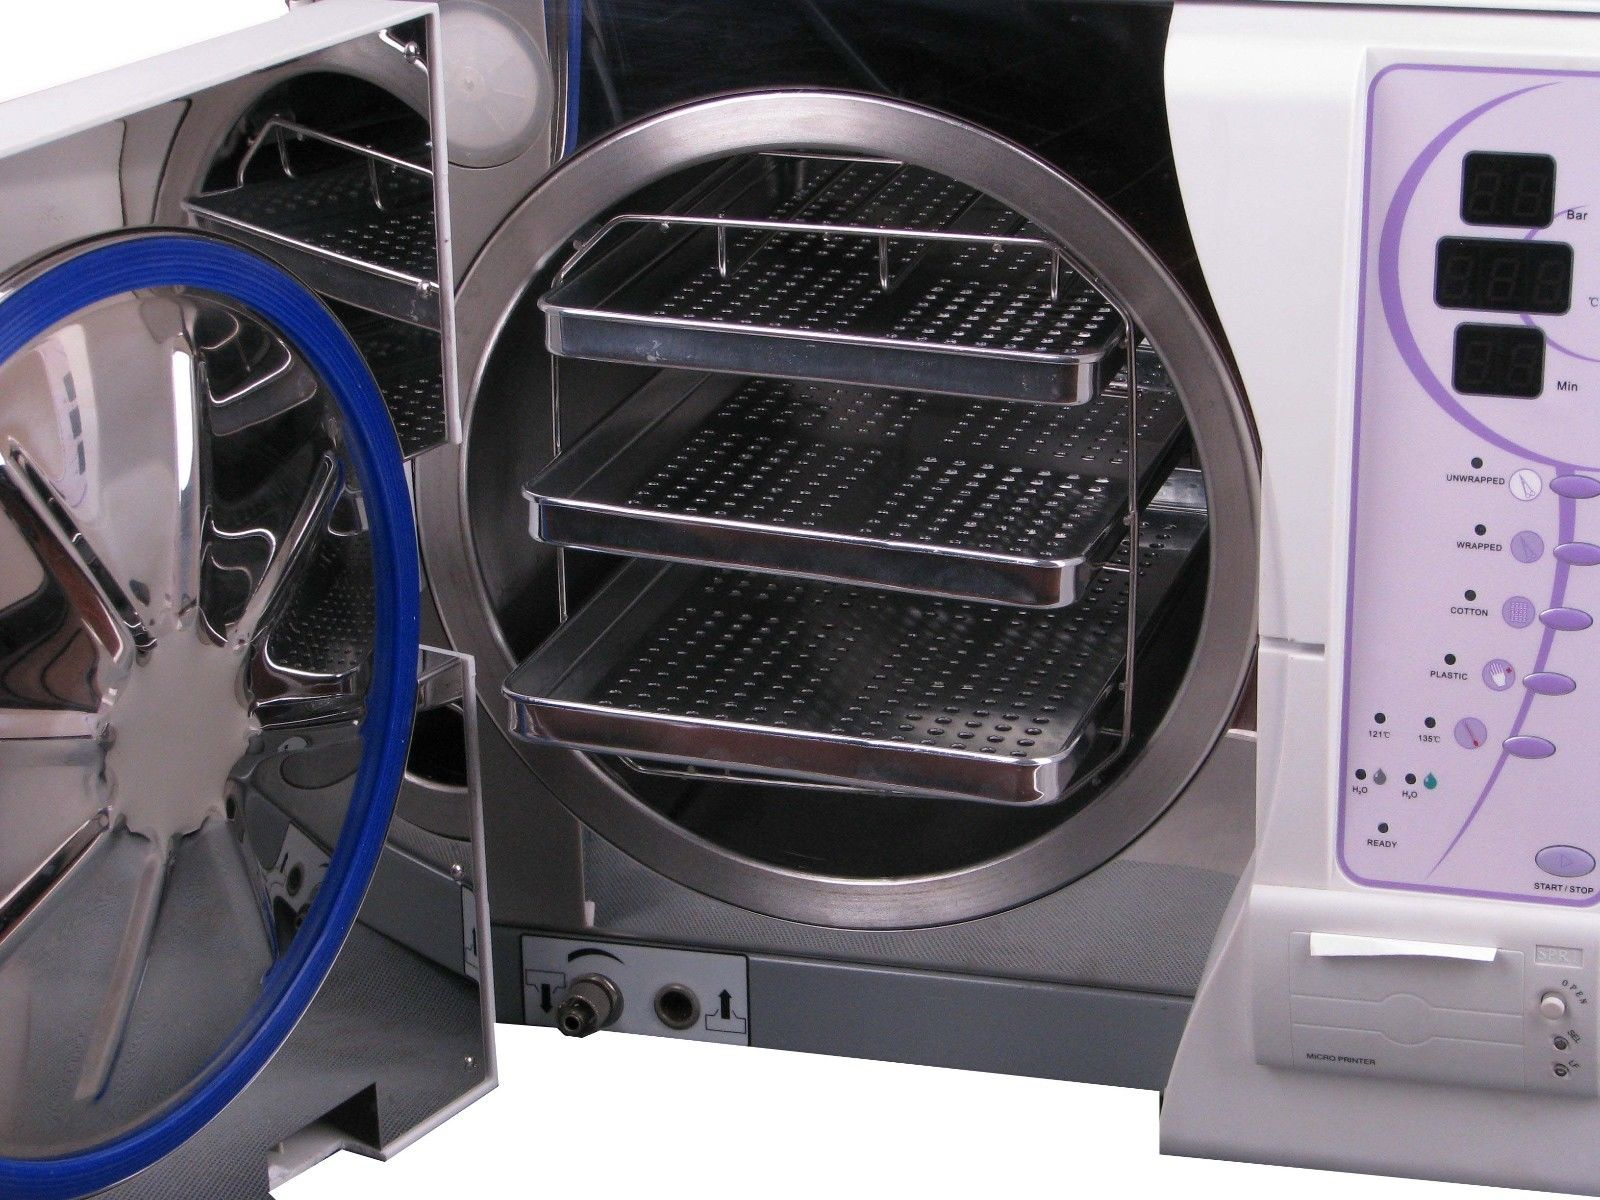 Sun® 18L Autoclave dentaire (Vacuum Steam)